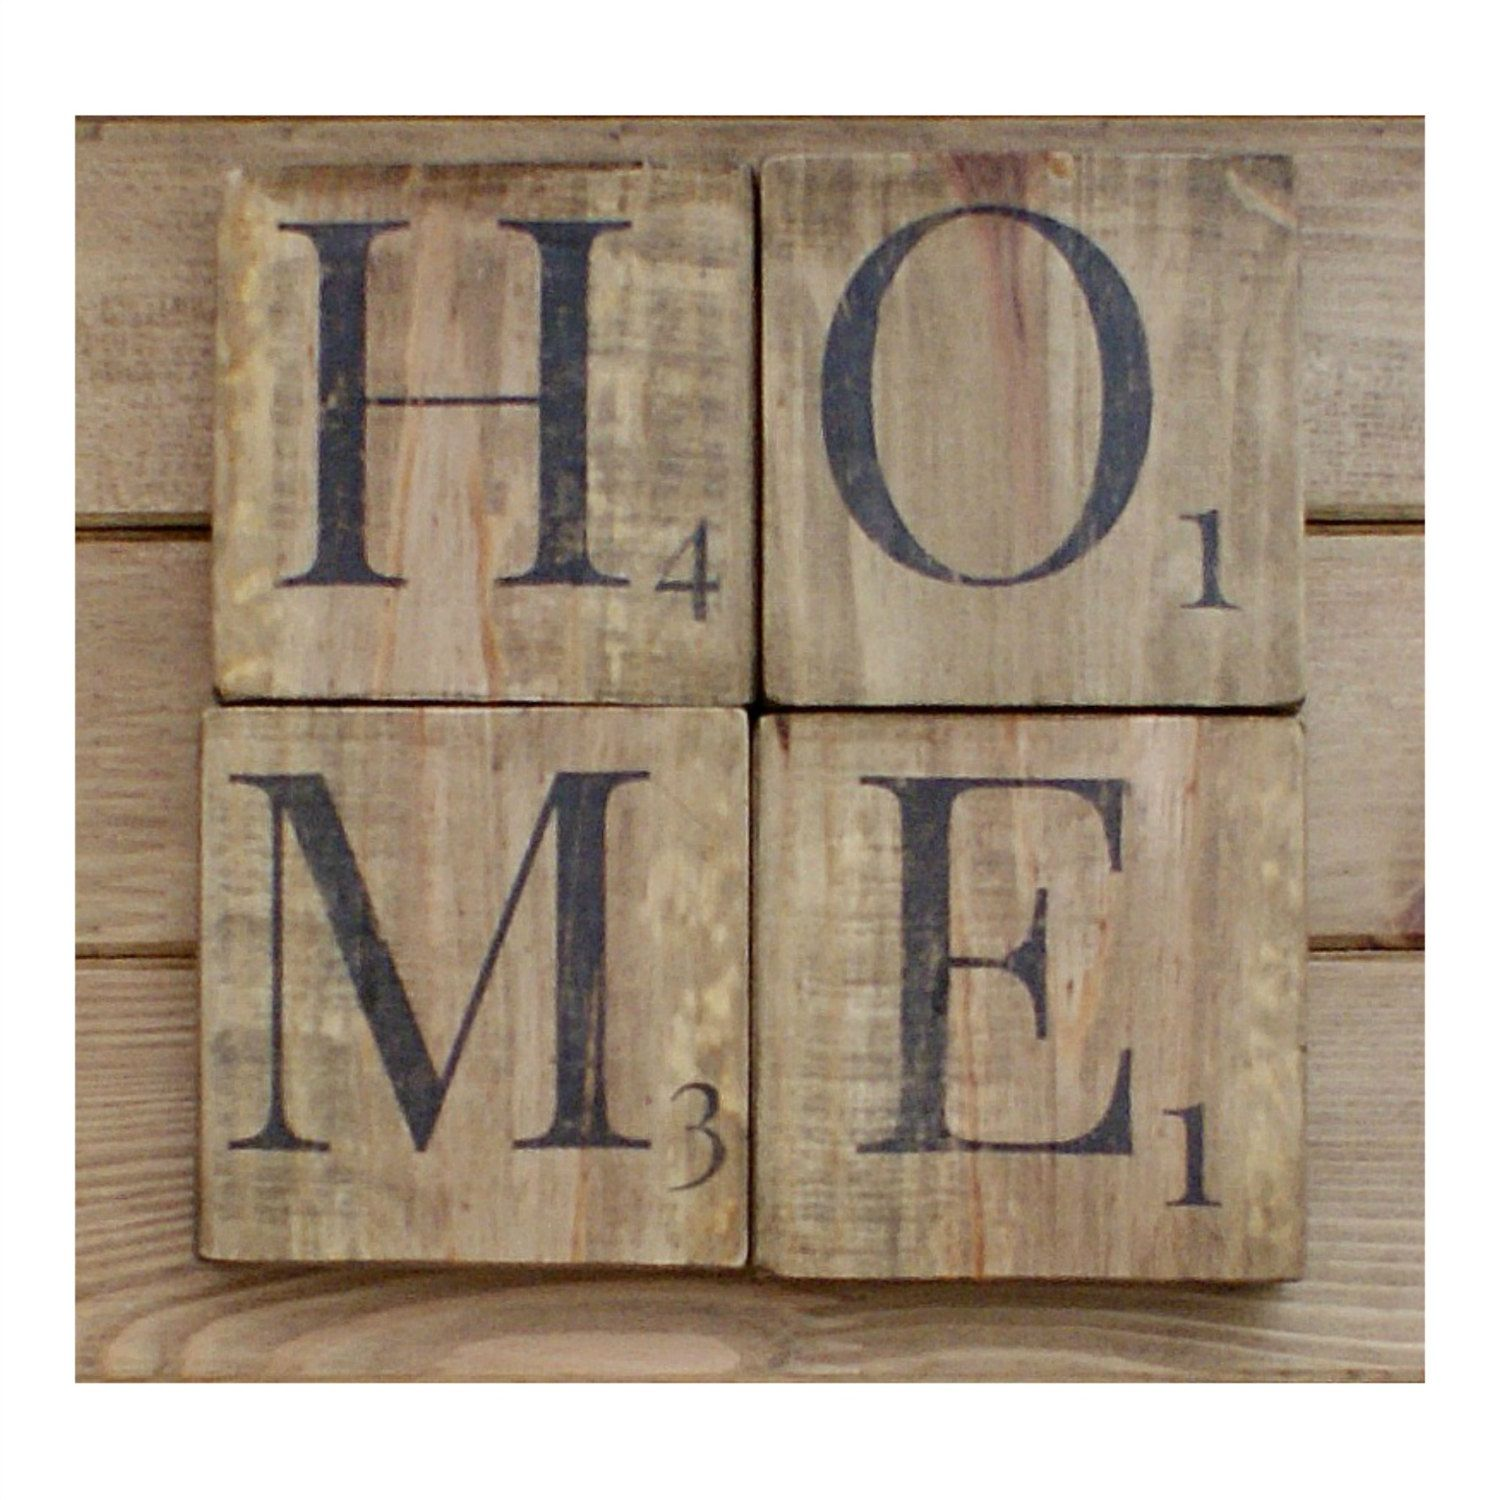 Scrabble Letter Wall Decor Home Sign Wooden Scrabble Letterswood Wall Artreclaimed Wood